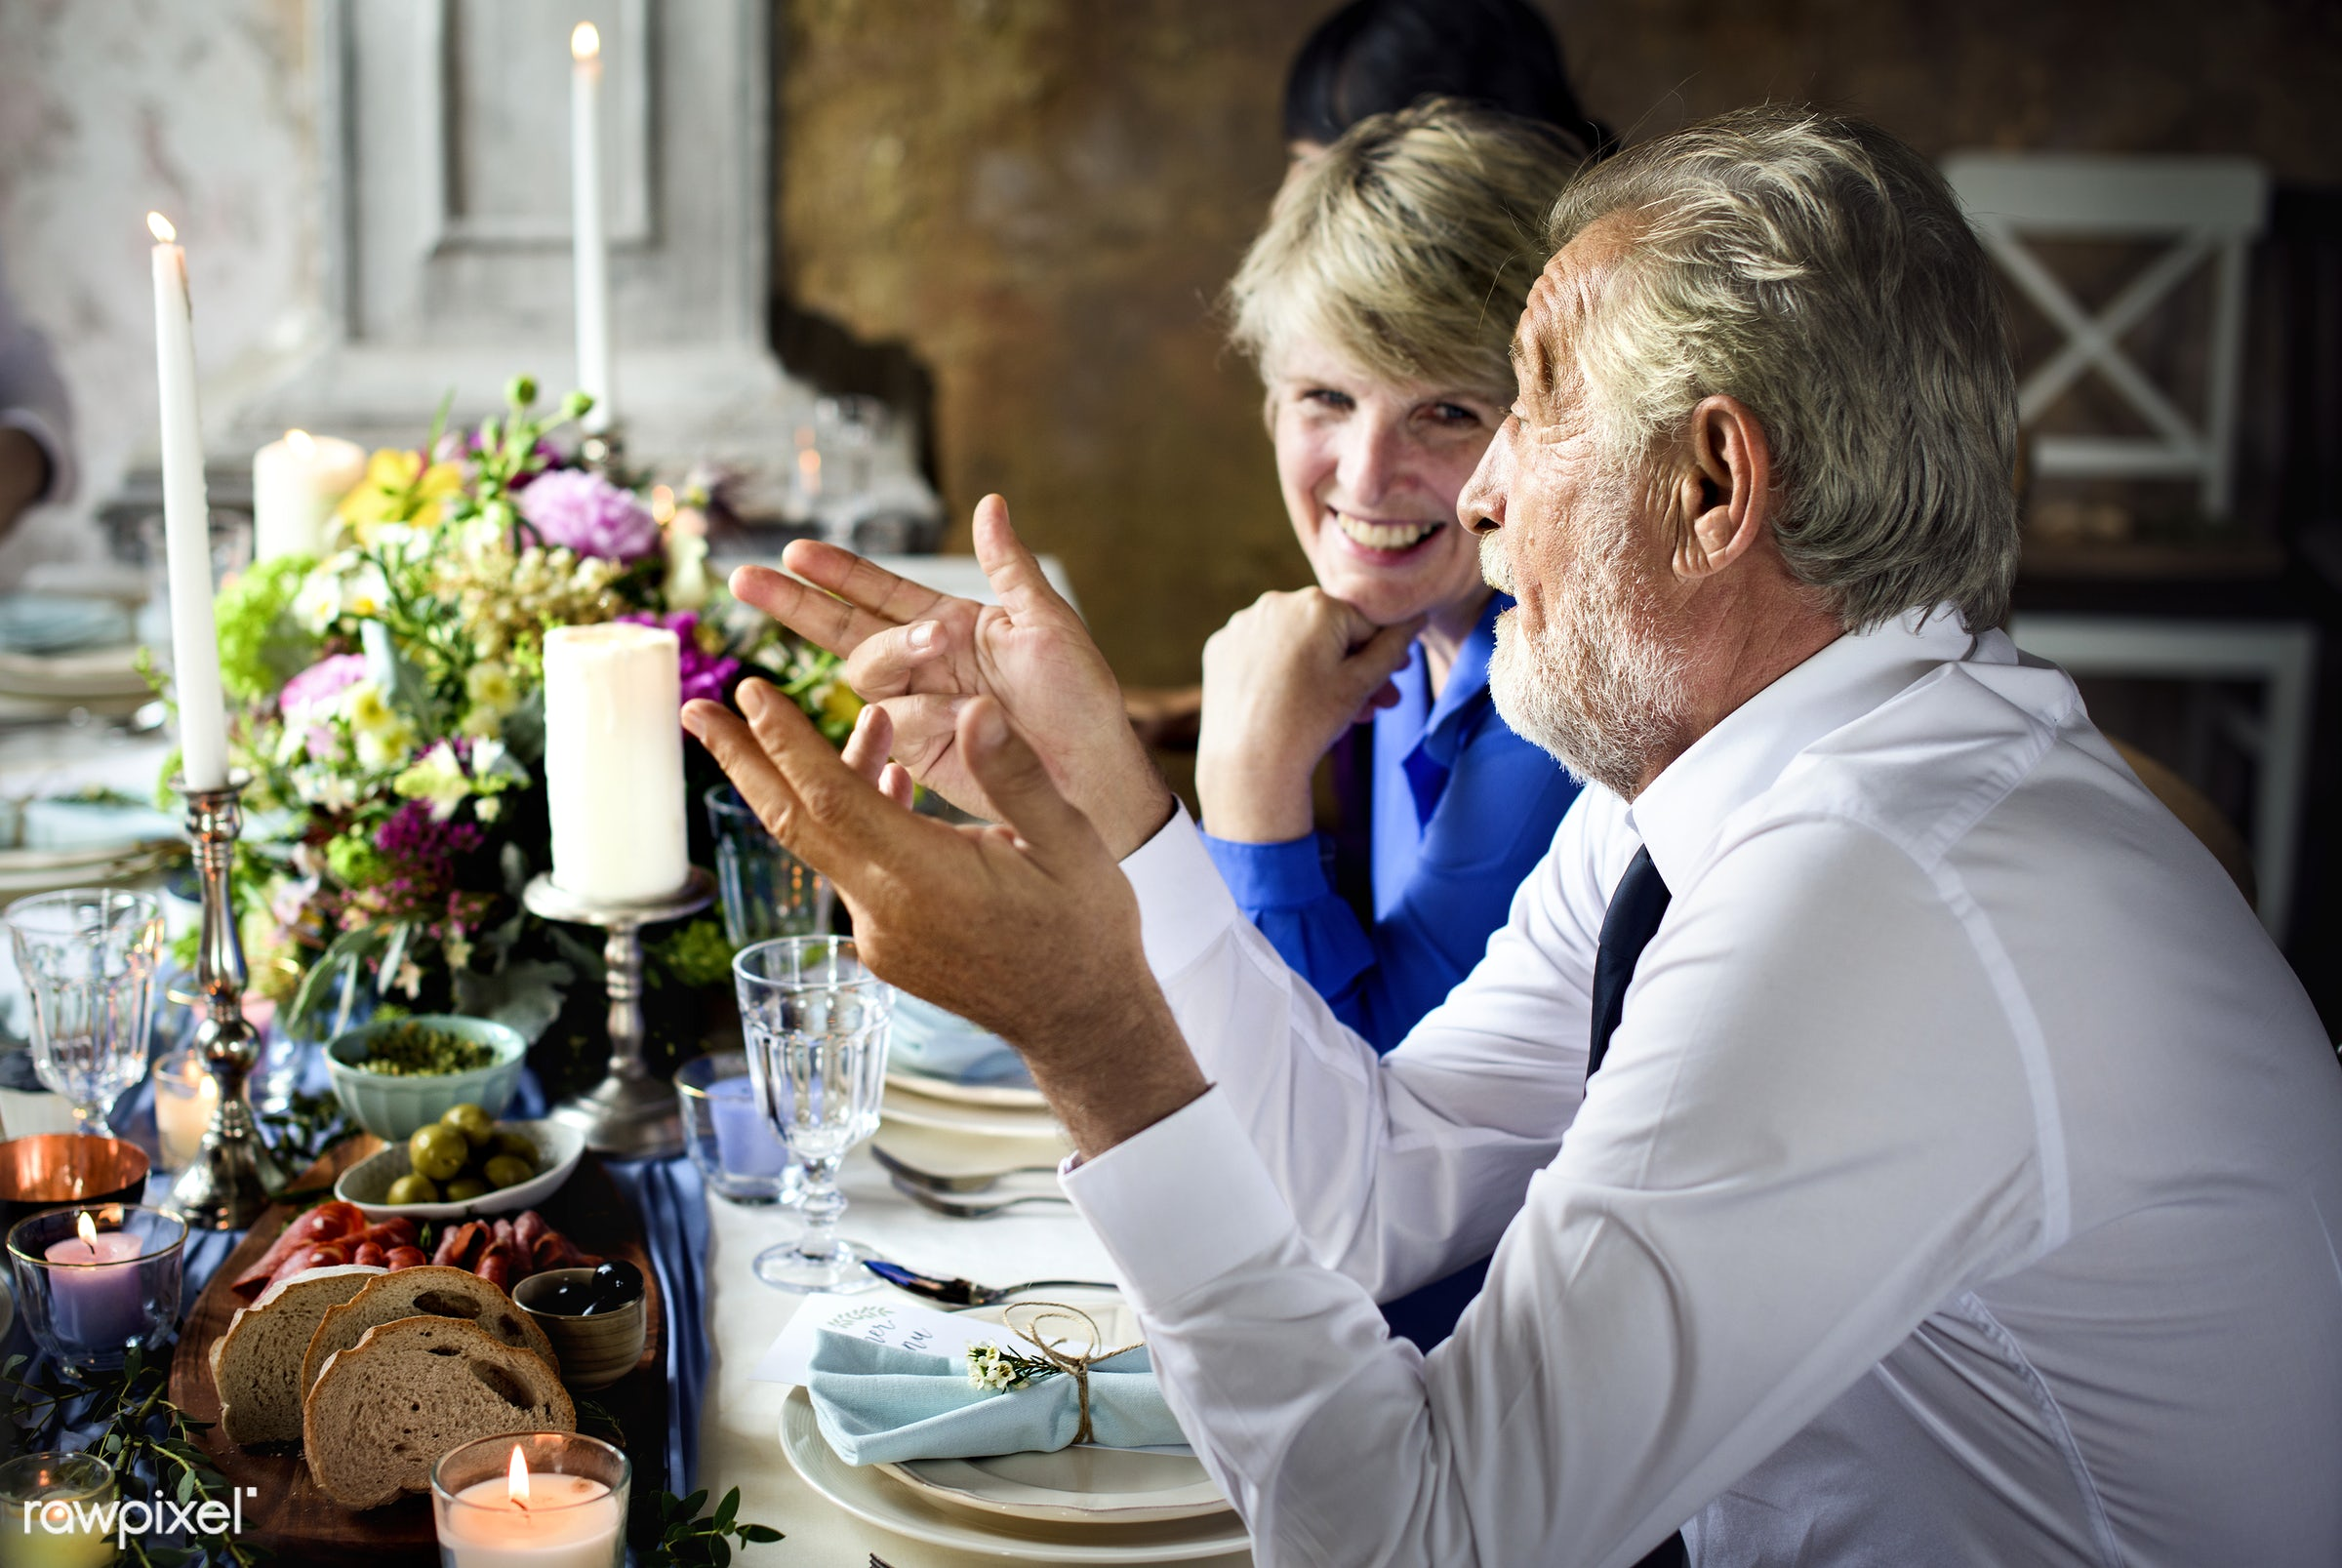 Wedding guests chatting at the table - chatting, cheerful, communication, dining, elderly, friends, guest, old, party,...